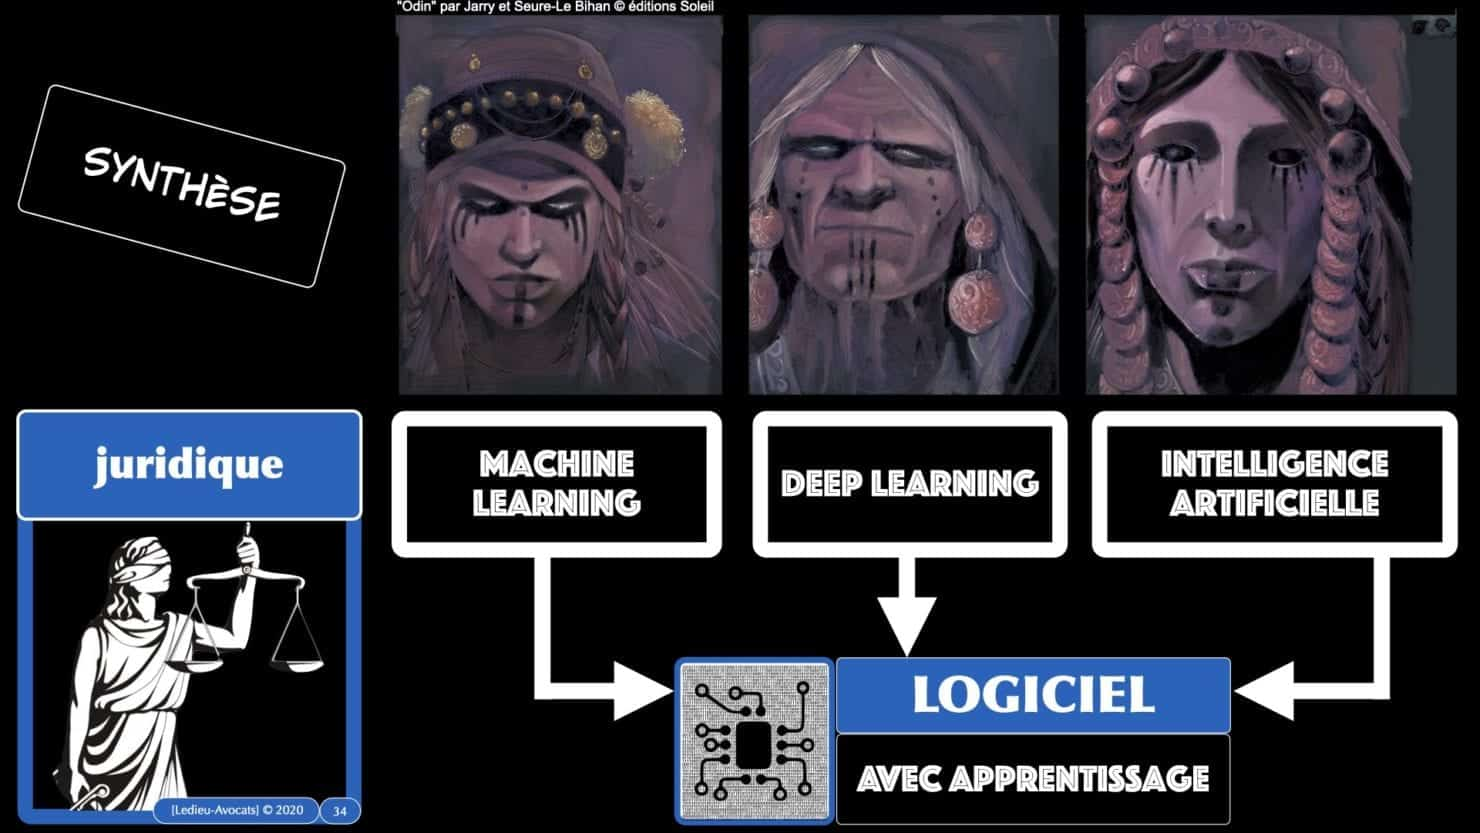 machine learning deep learning Intelligence artificielle SYNTHESE